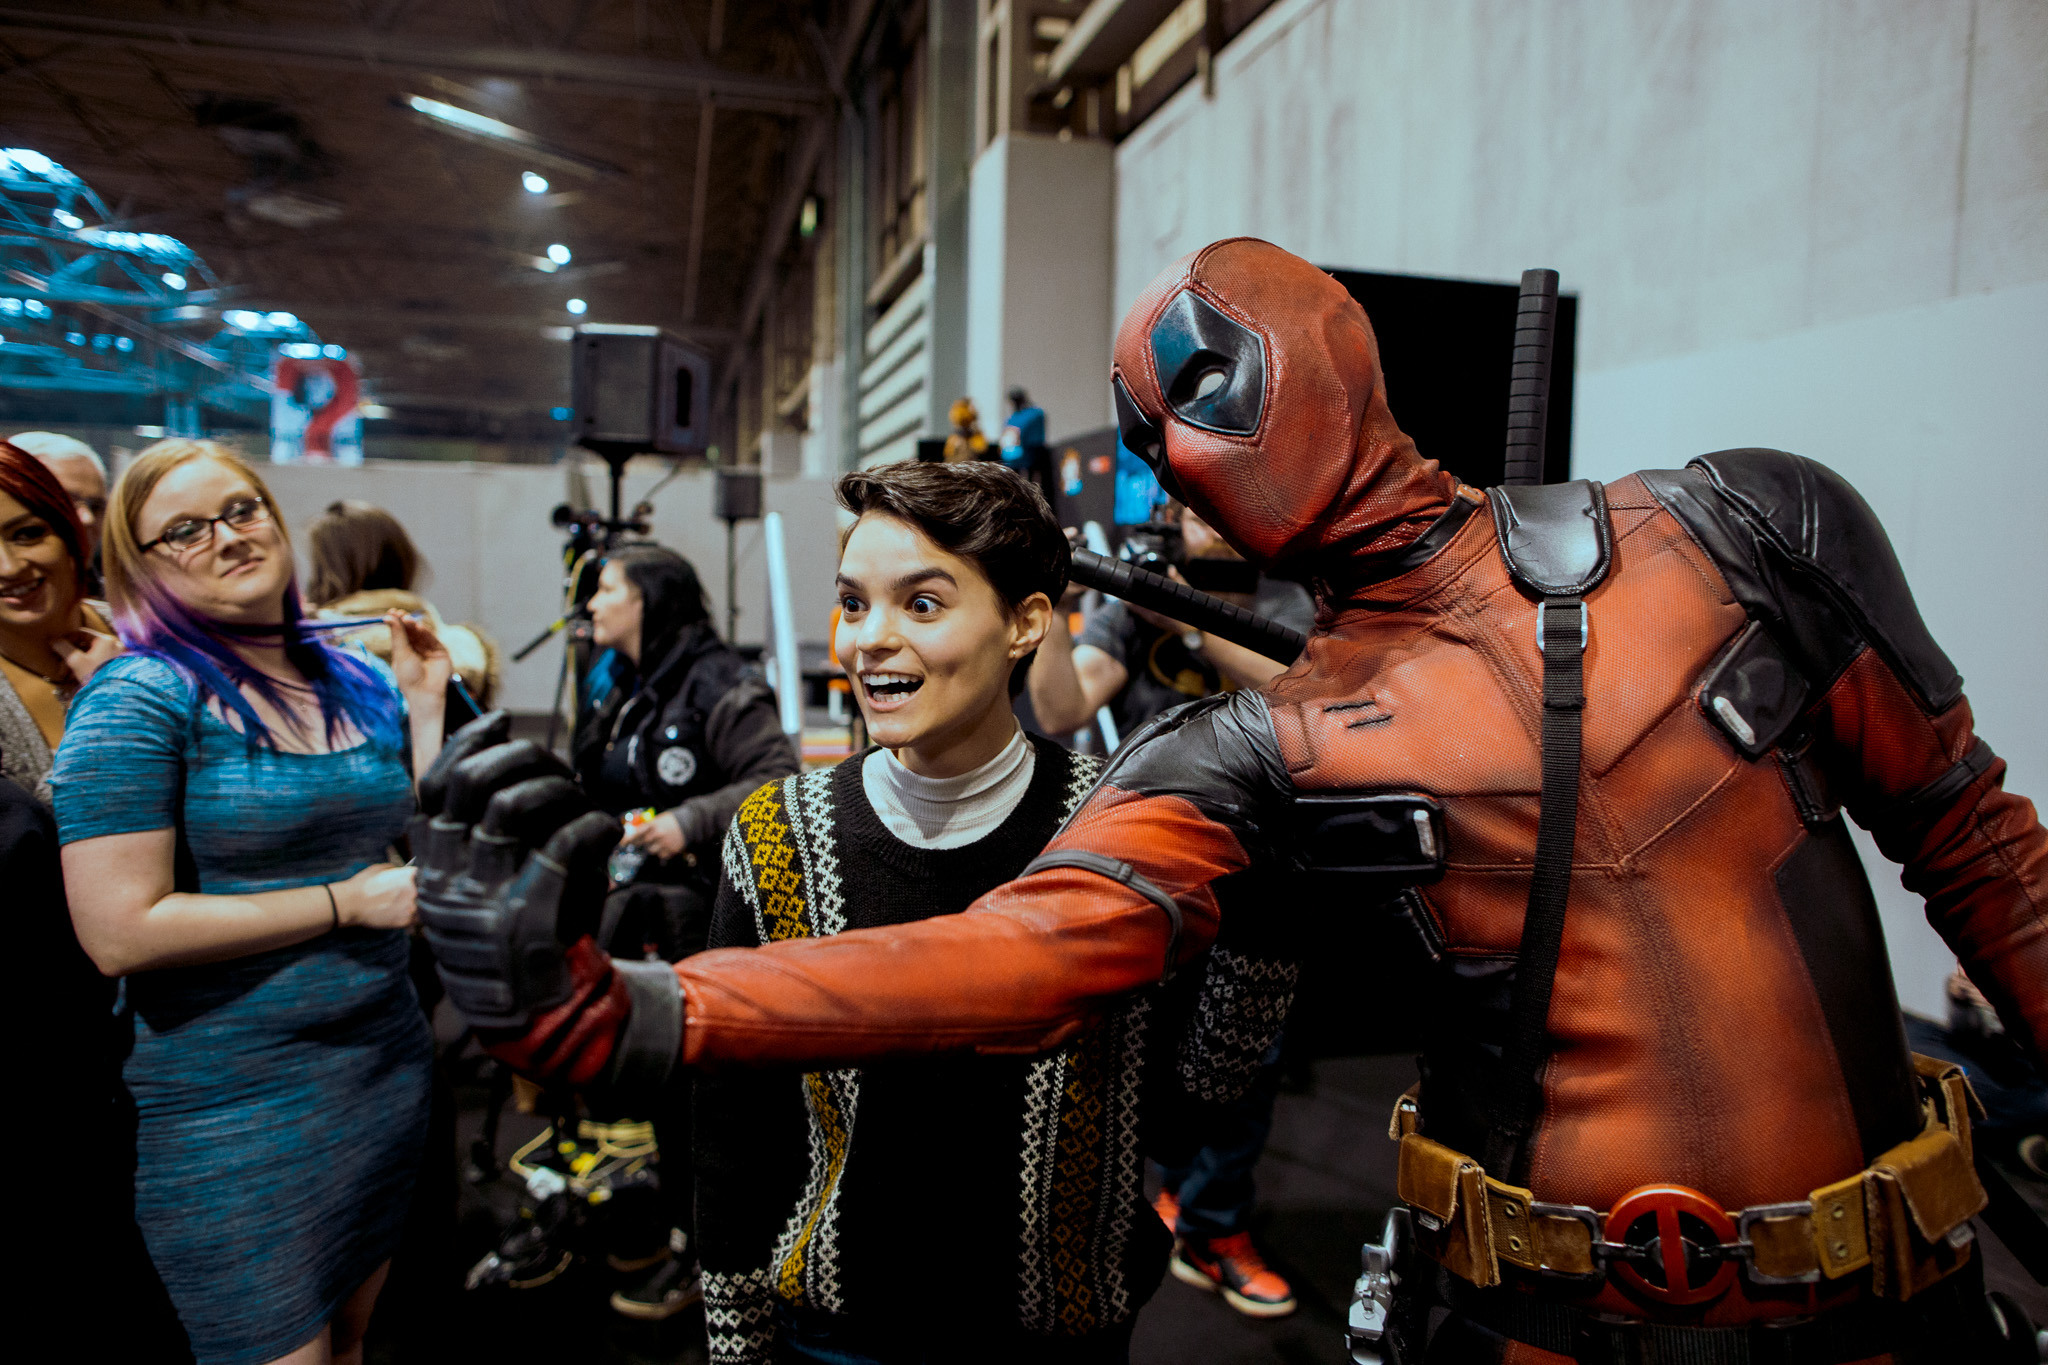 Attendees at Comic Con taking a photo with Deadpool